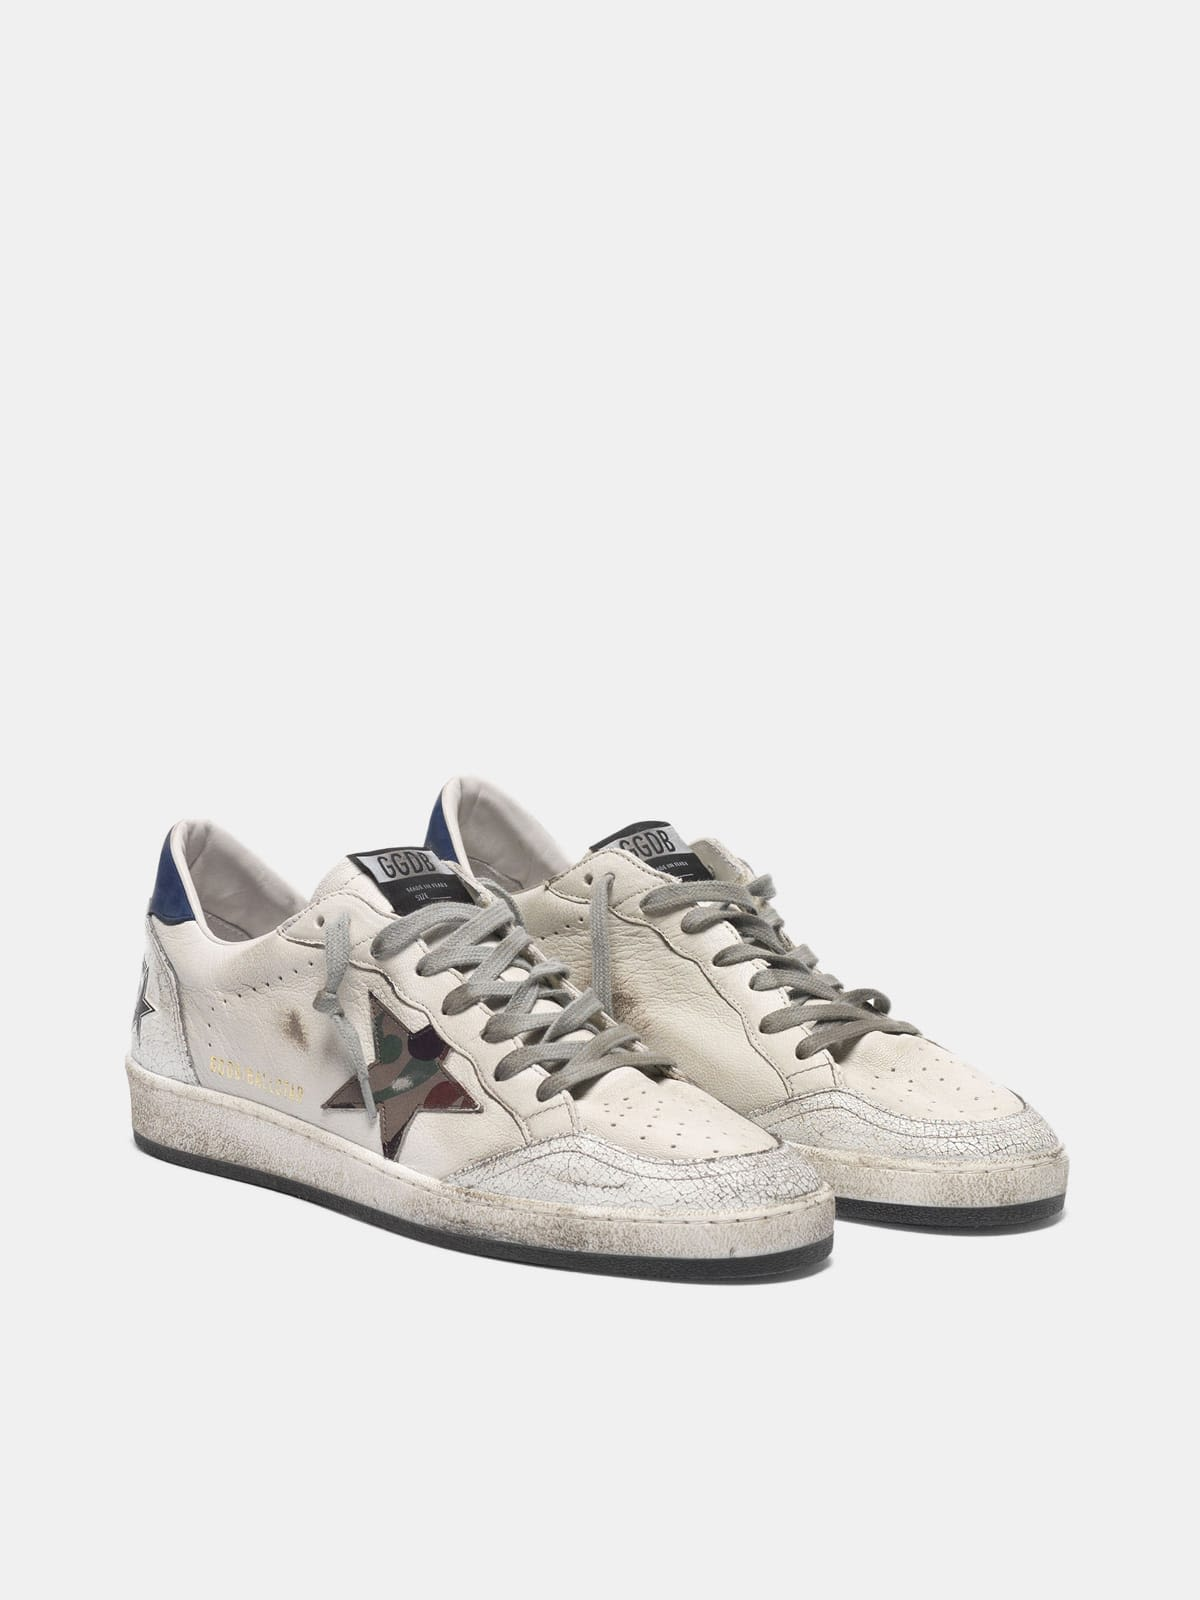 Ball Star sneakers with camouflage star and navy heel tab